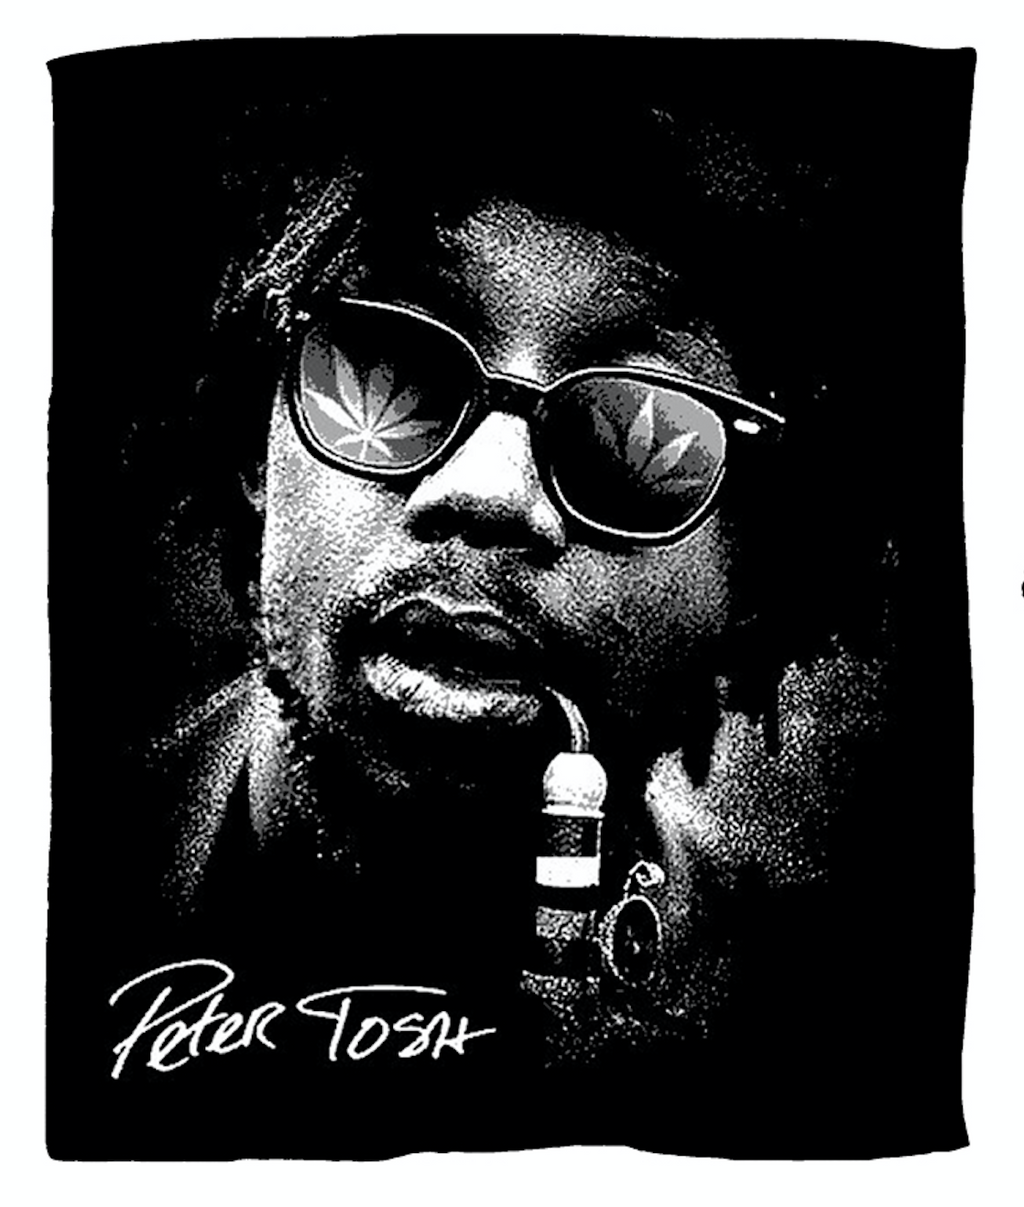 Iconic Peter Tosh Throw Blanket AVAILABLE FOR PRESALE